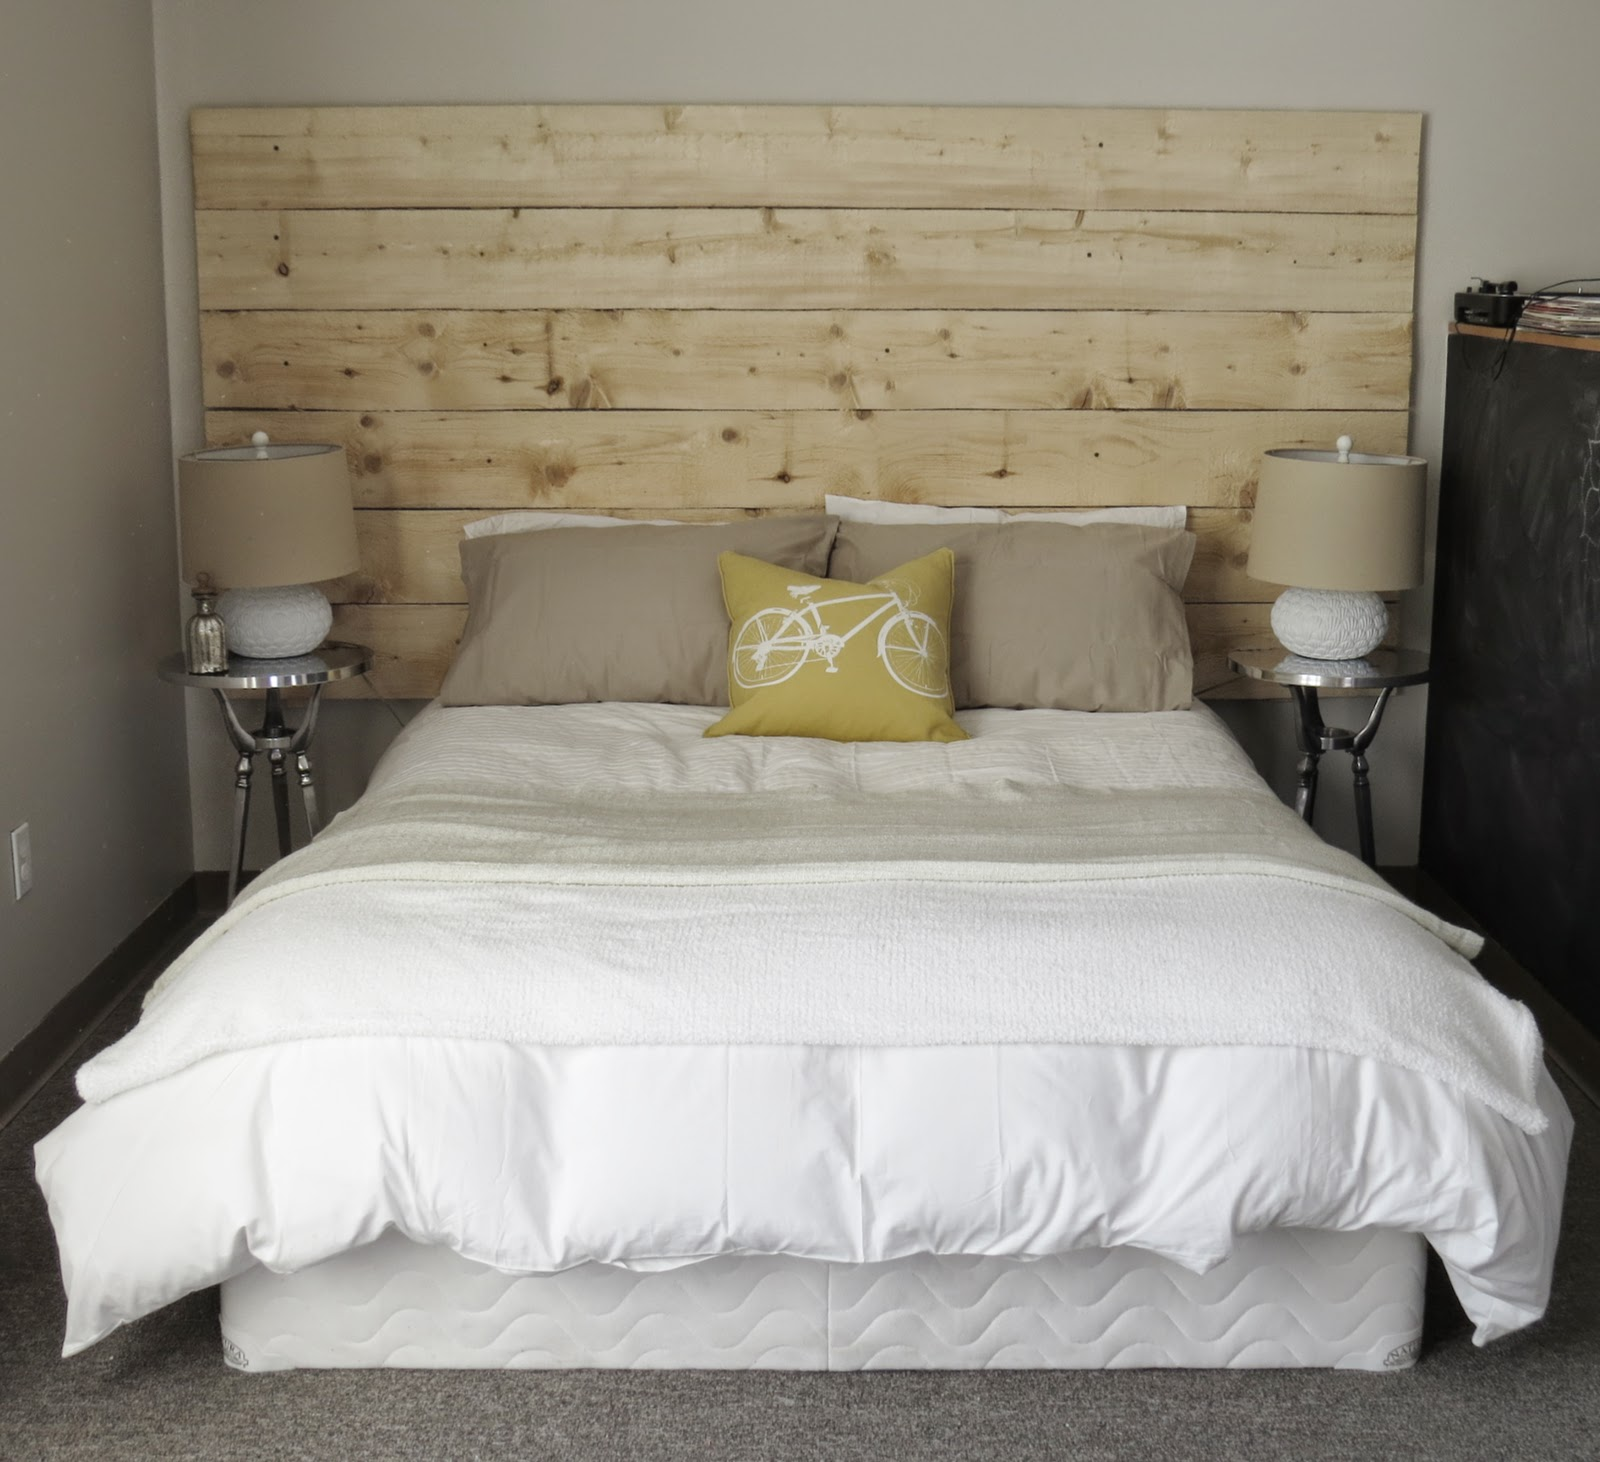 The Long Awaited Home  Megan s Rustic Wood Headboard She loves to decorate  and has her own ideas and style  She wanted to make  a rustic headboard for the little nook where her bed resides